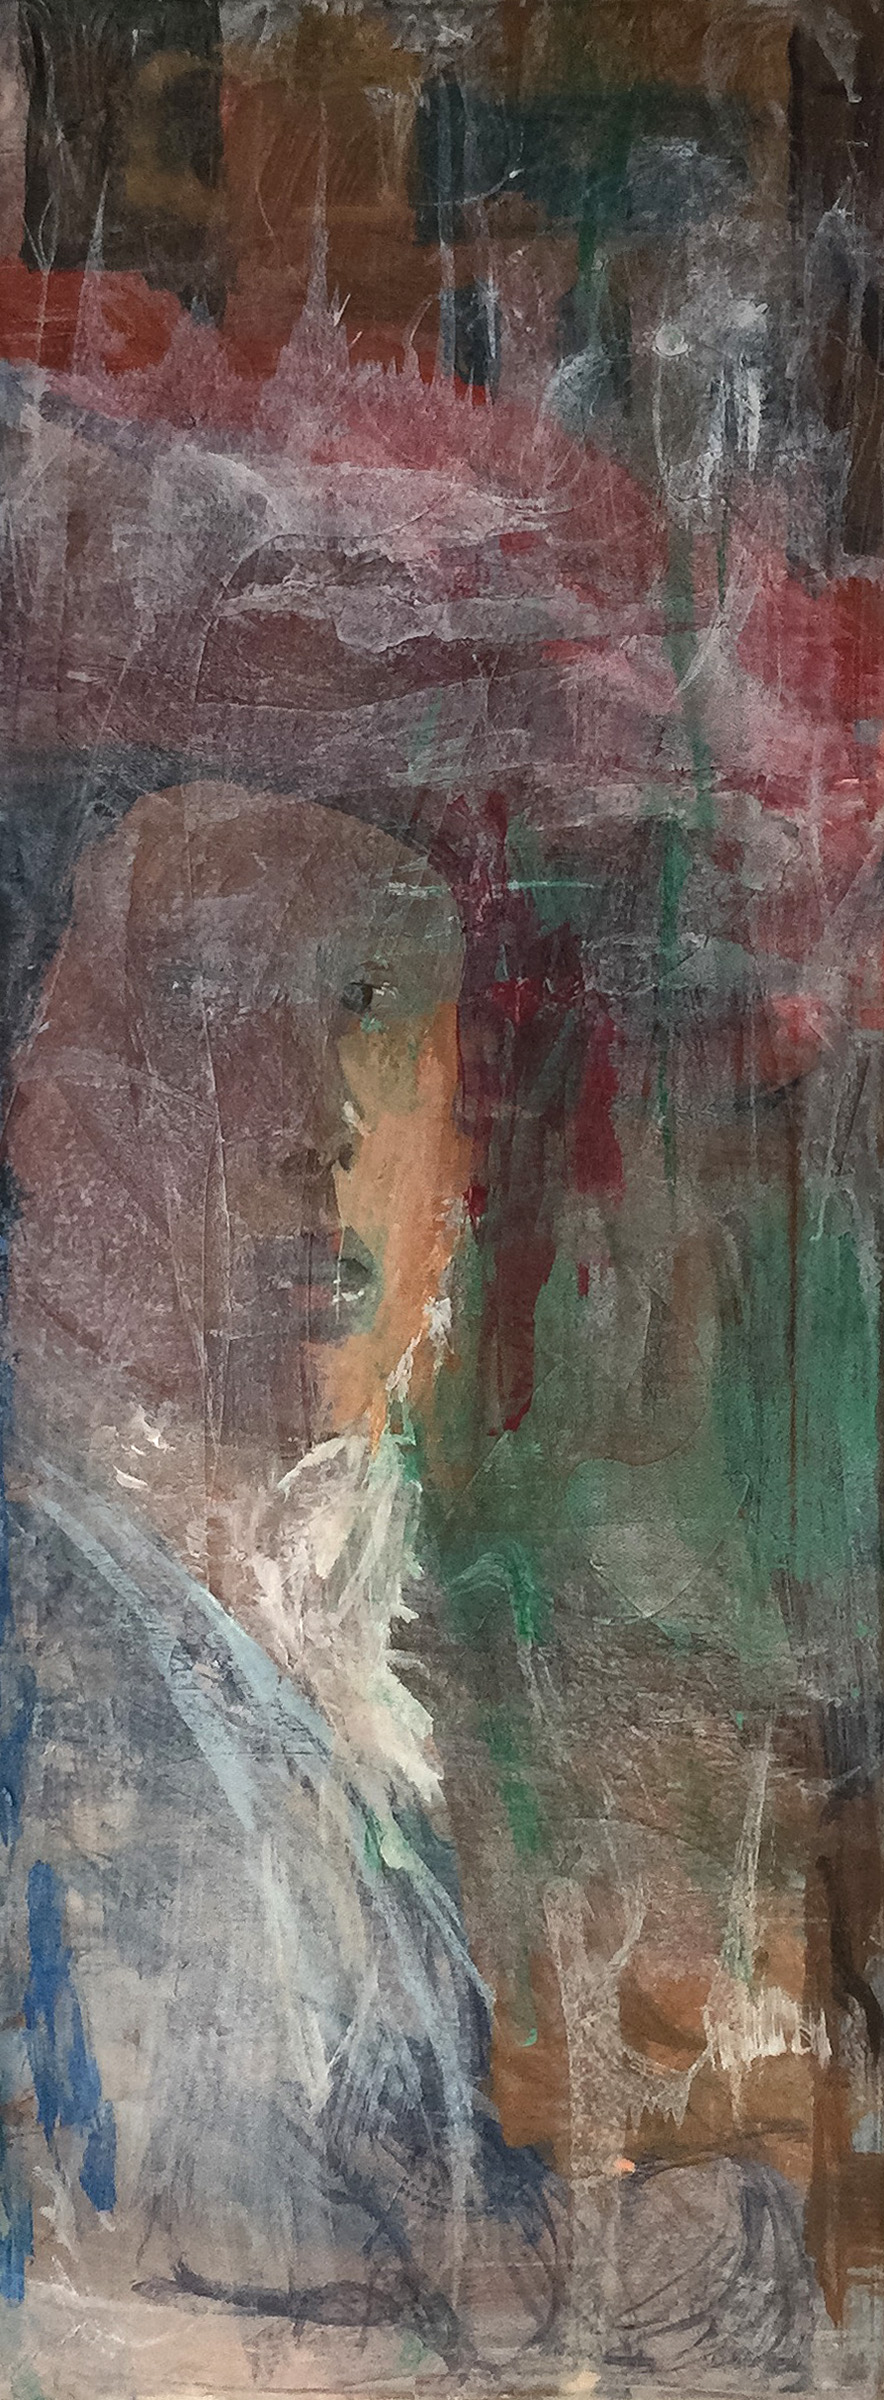 "grey7/the girl with the red hat   48x18""  mixed media on canvas"